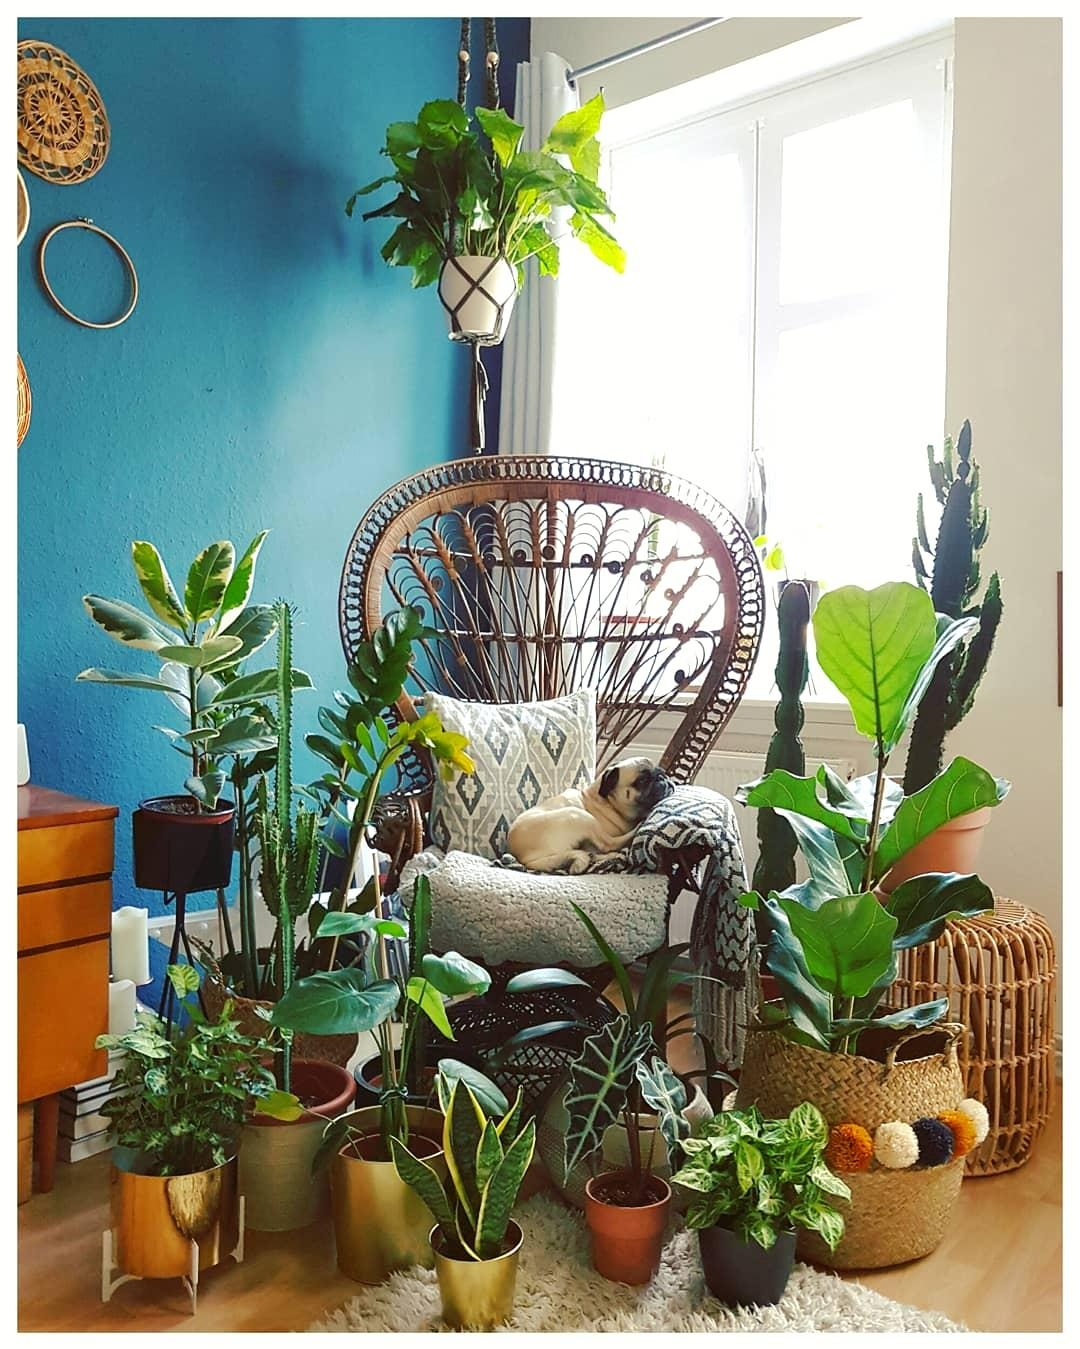 #jungle #plants #peacock-chair #livingroom #mops